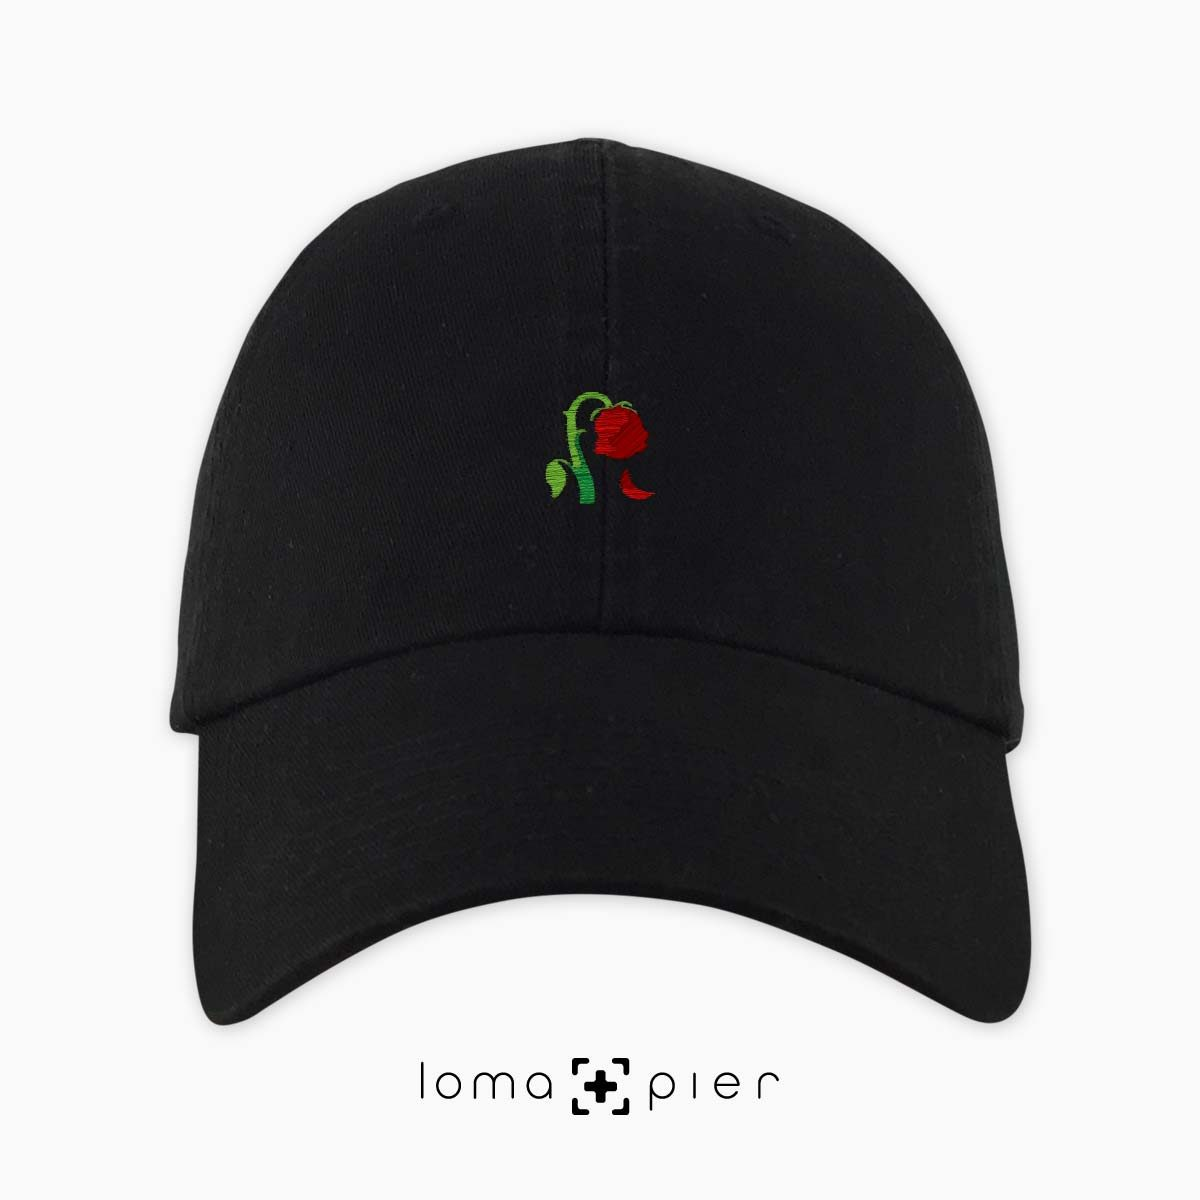 DYING ROSE EMOJI icon embroidered on a black unstructured dad hat by loma+pier hat store made in the USA